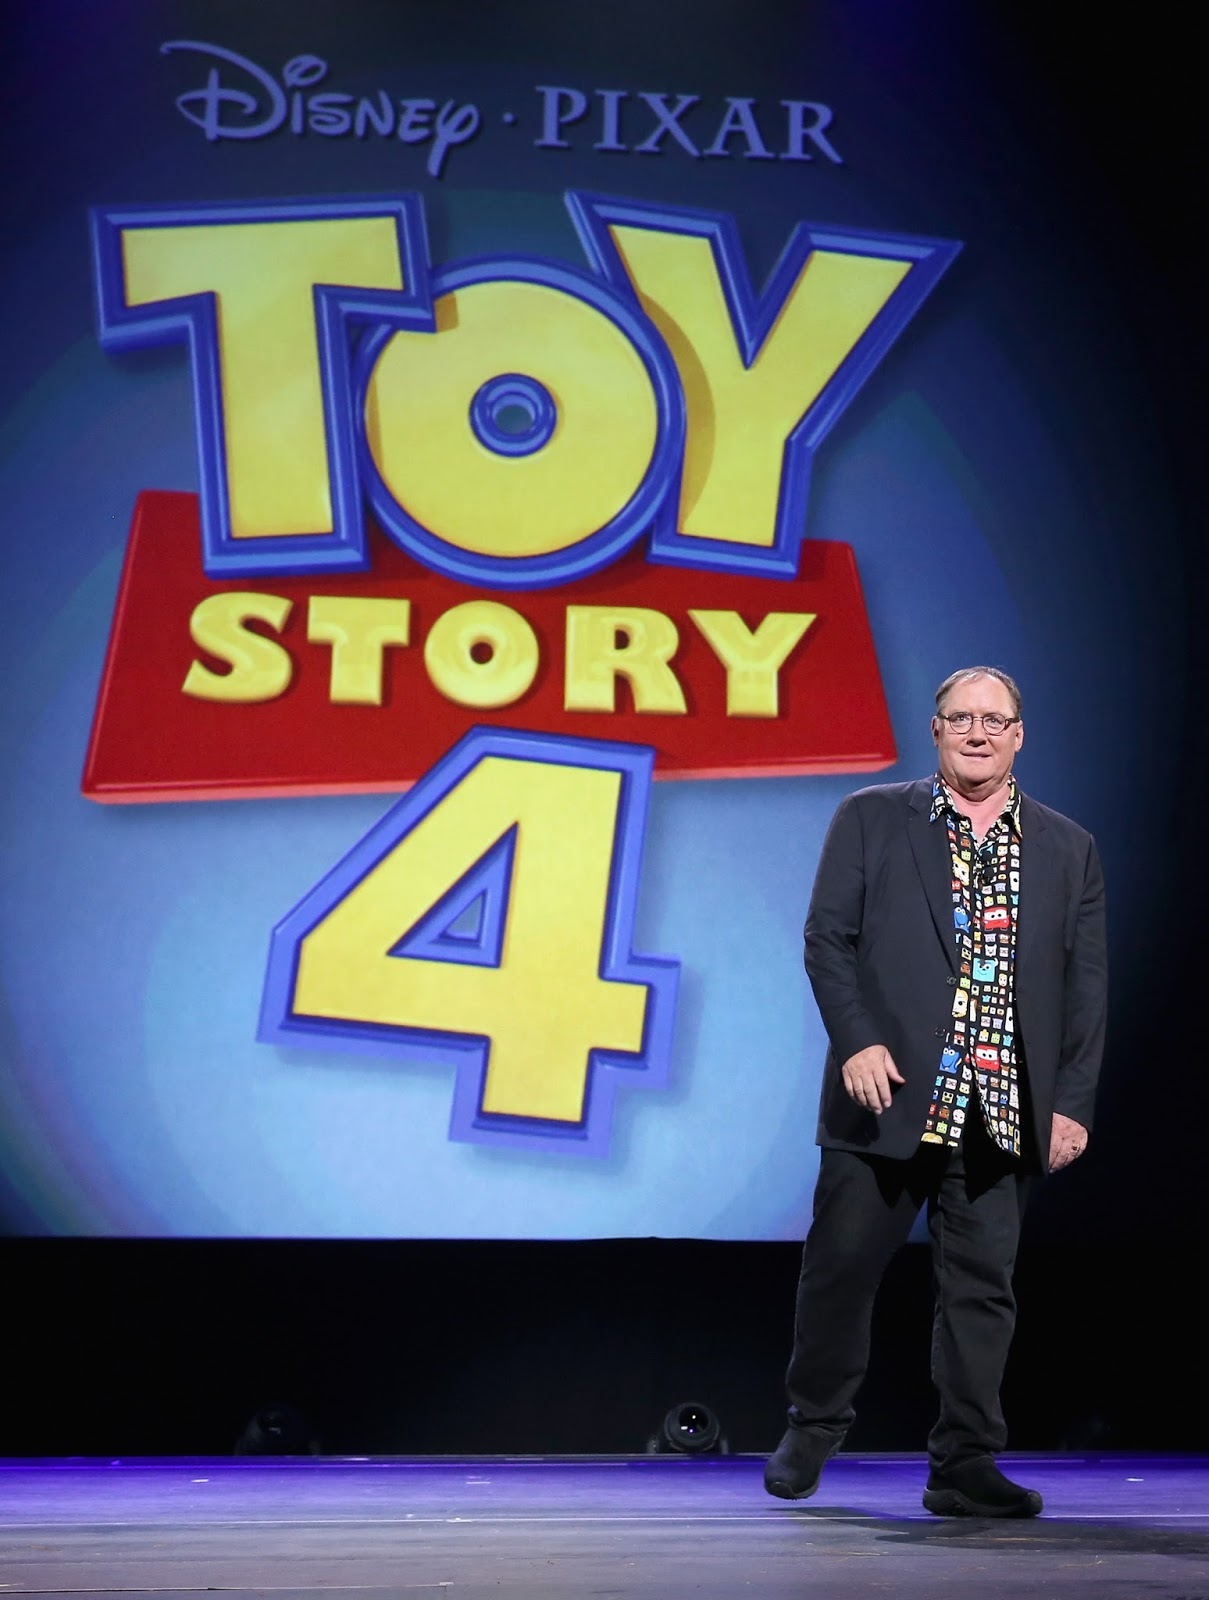 Toy Story 4 Movie : Collecting toyz toy story th anniversary celebration